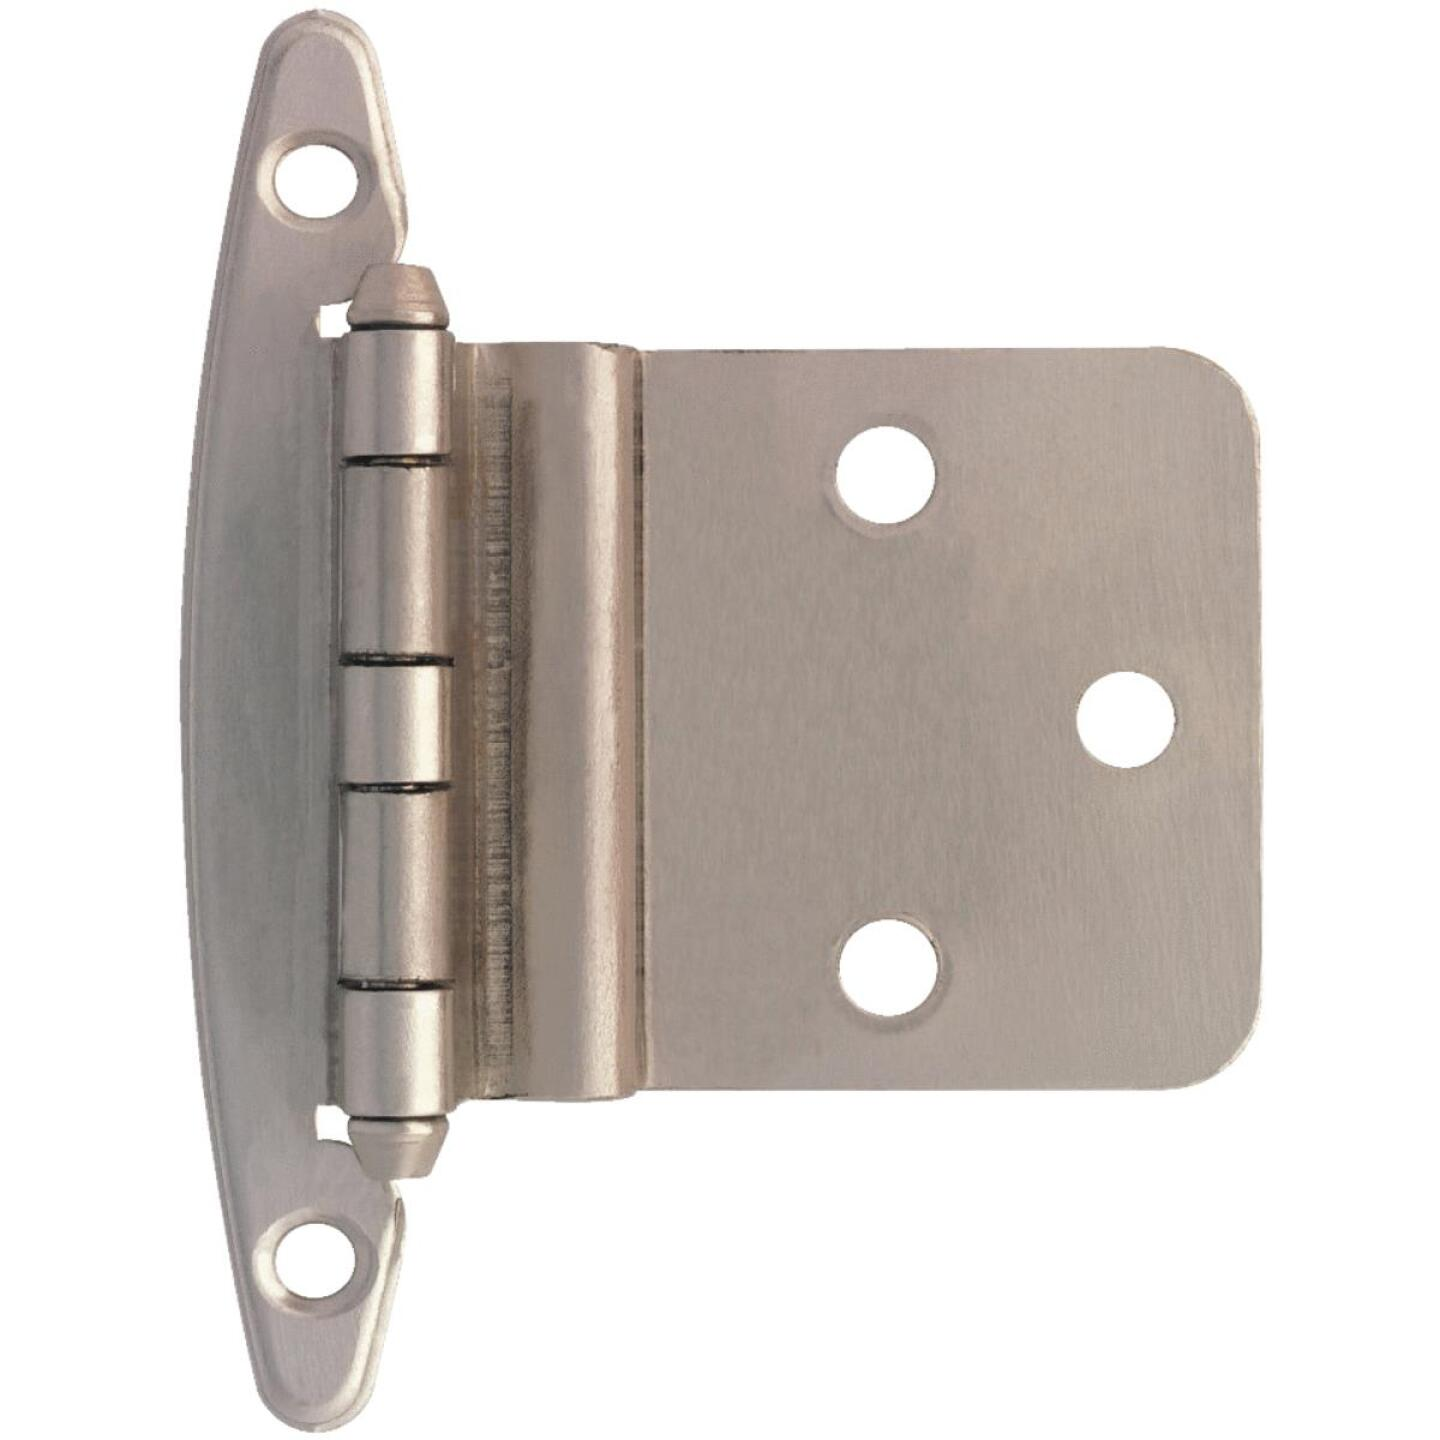 Liberty Satin Nickel 3/8 In. Inset Hinge, Without Spring, (2-Pack) Image 1